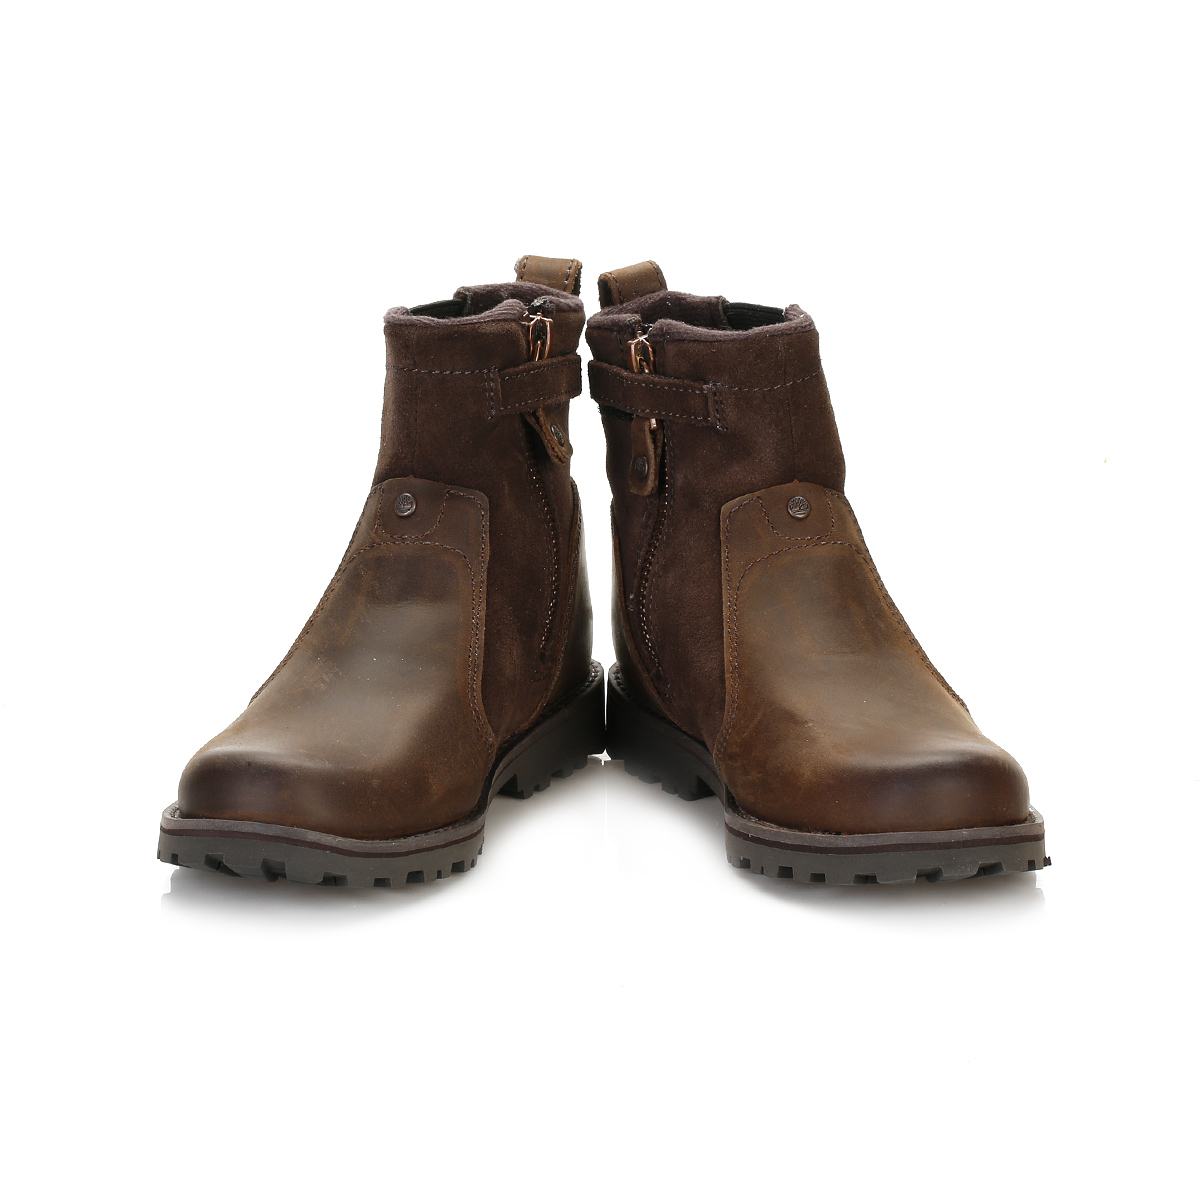 Smoky Mountain Boots Kid's Muskogee Oiled Distress Brown Leather Cowboy Boot. Sold by Sears. $ $ Smoky Mountain Boots Kid's Hopalong Brown Distress/Pink Leather Cowboy Boot.